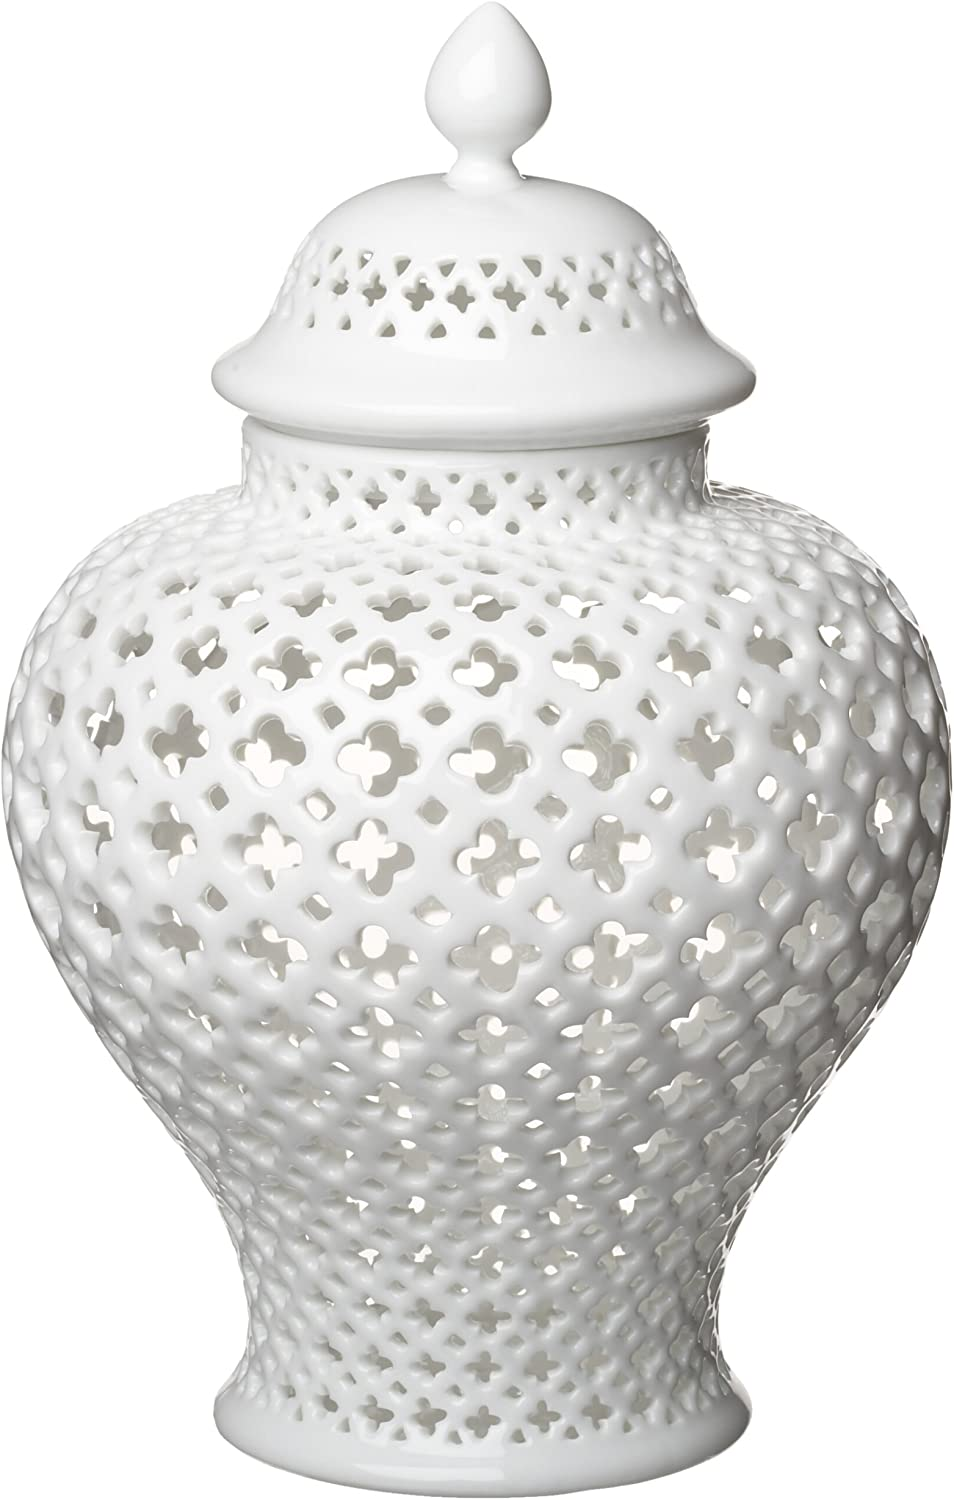 Two's Company Carthage Pierced Porcelain Lantern with Lid, White